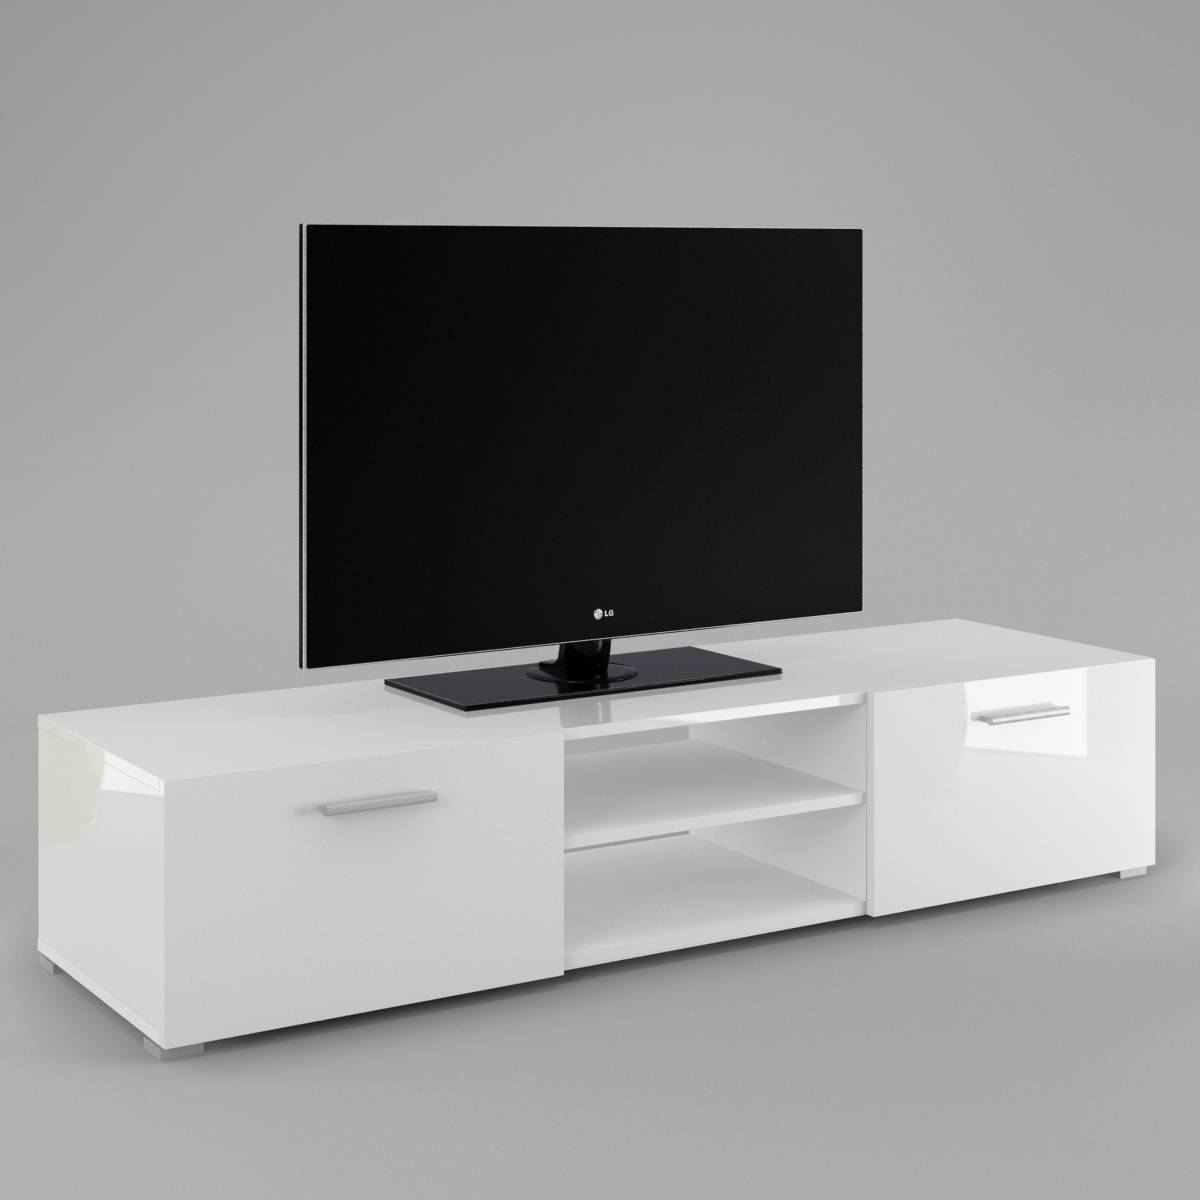 Tv Cabinet Luna - Labi Furniturelabi Furniture pertaining to Tv Cabinets (Image 14 of 15)